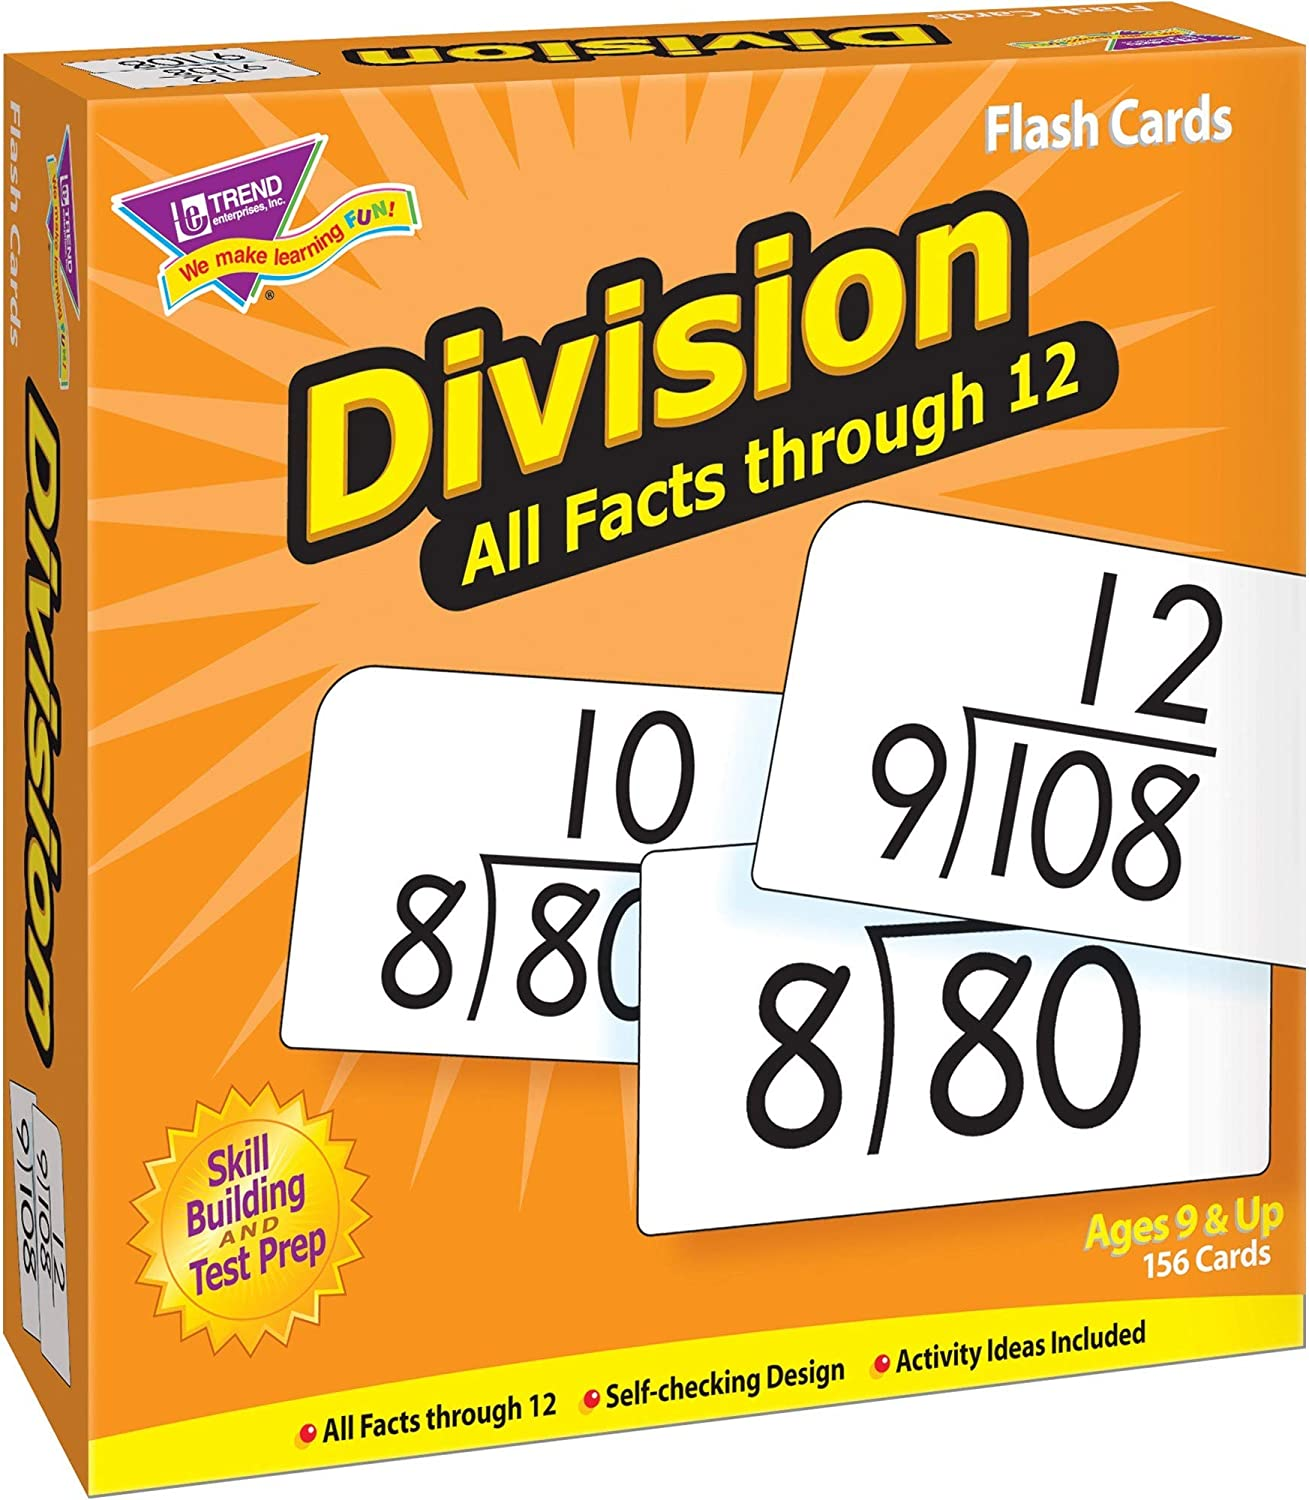 Trend Enterprises Division 0-12 All National uniform free shipping Flash Facts Card 25% OFF Skill Drill